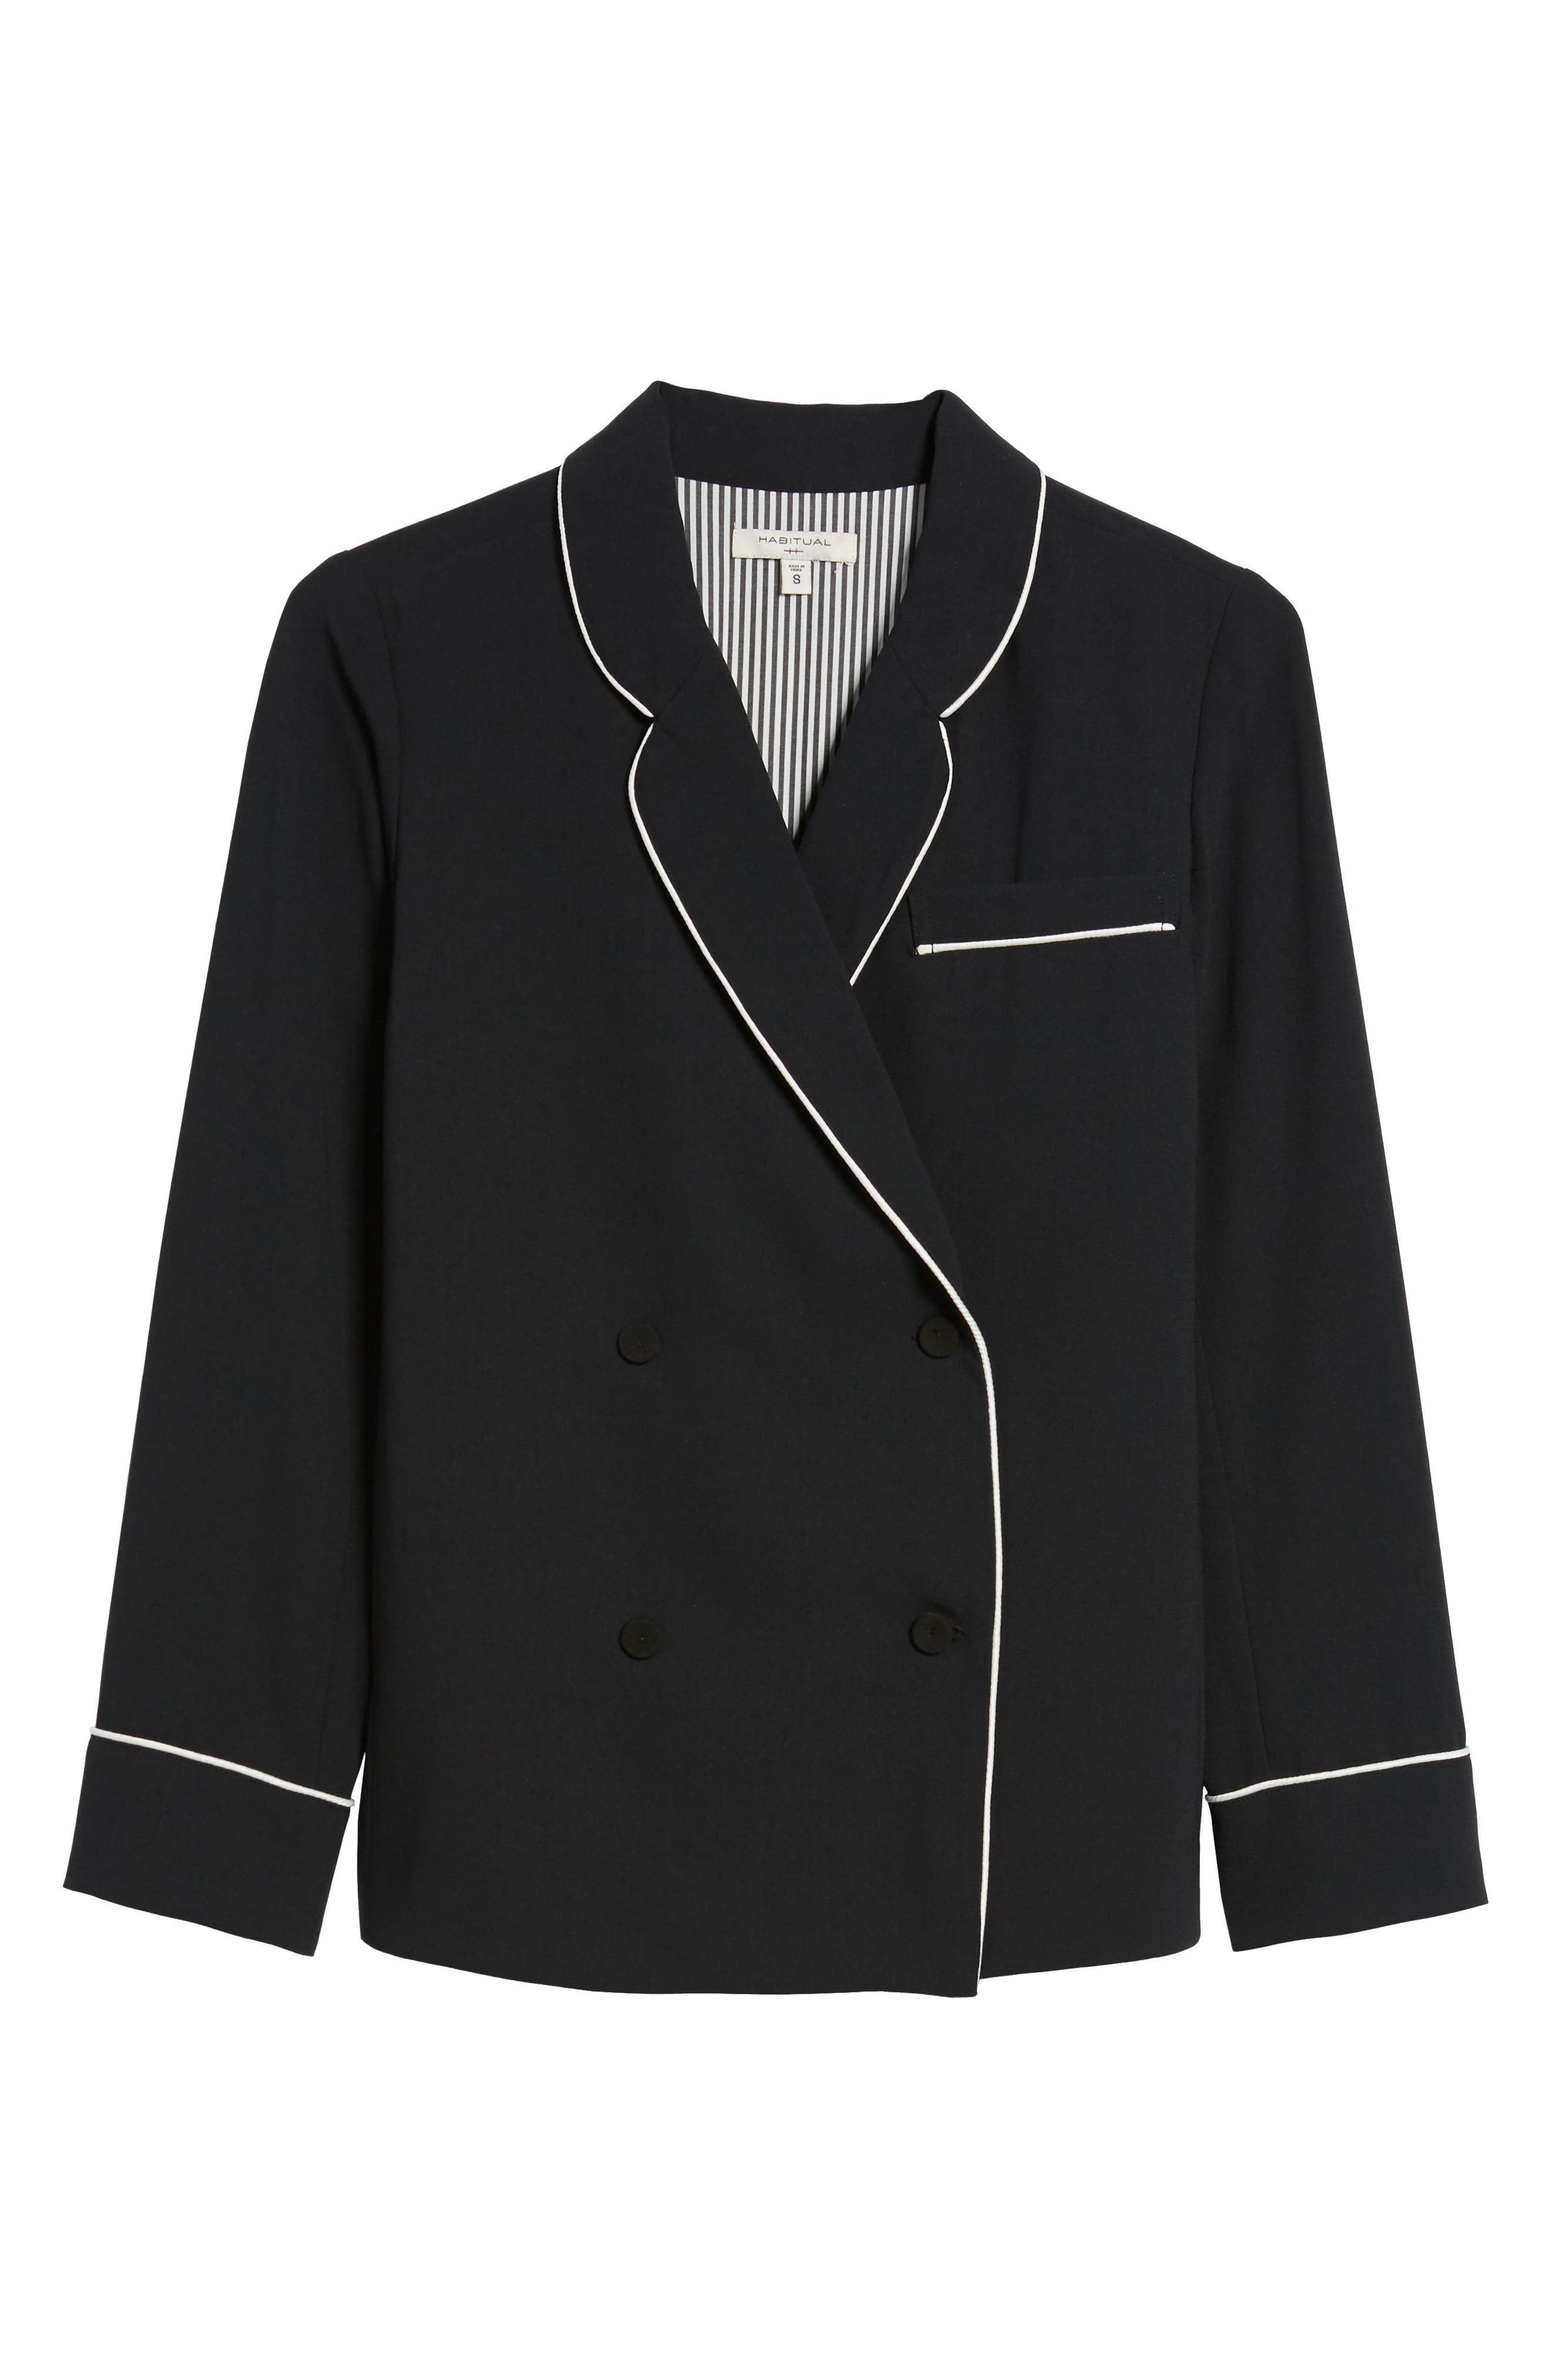 Double Breasted Jacket,                             Alternate thumbnail 5, color,                             BLACK/ BRIGHT WHITE PIPING